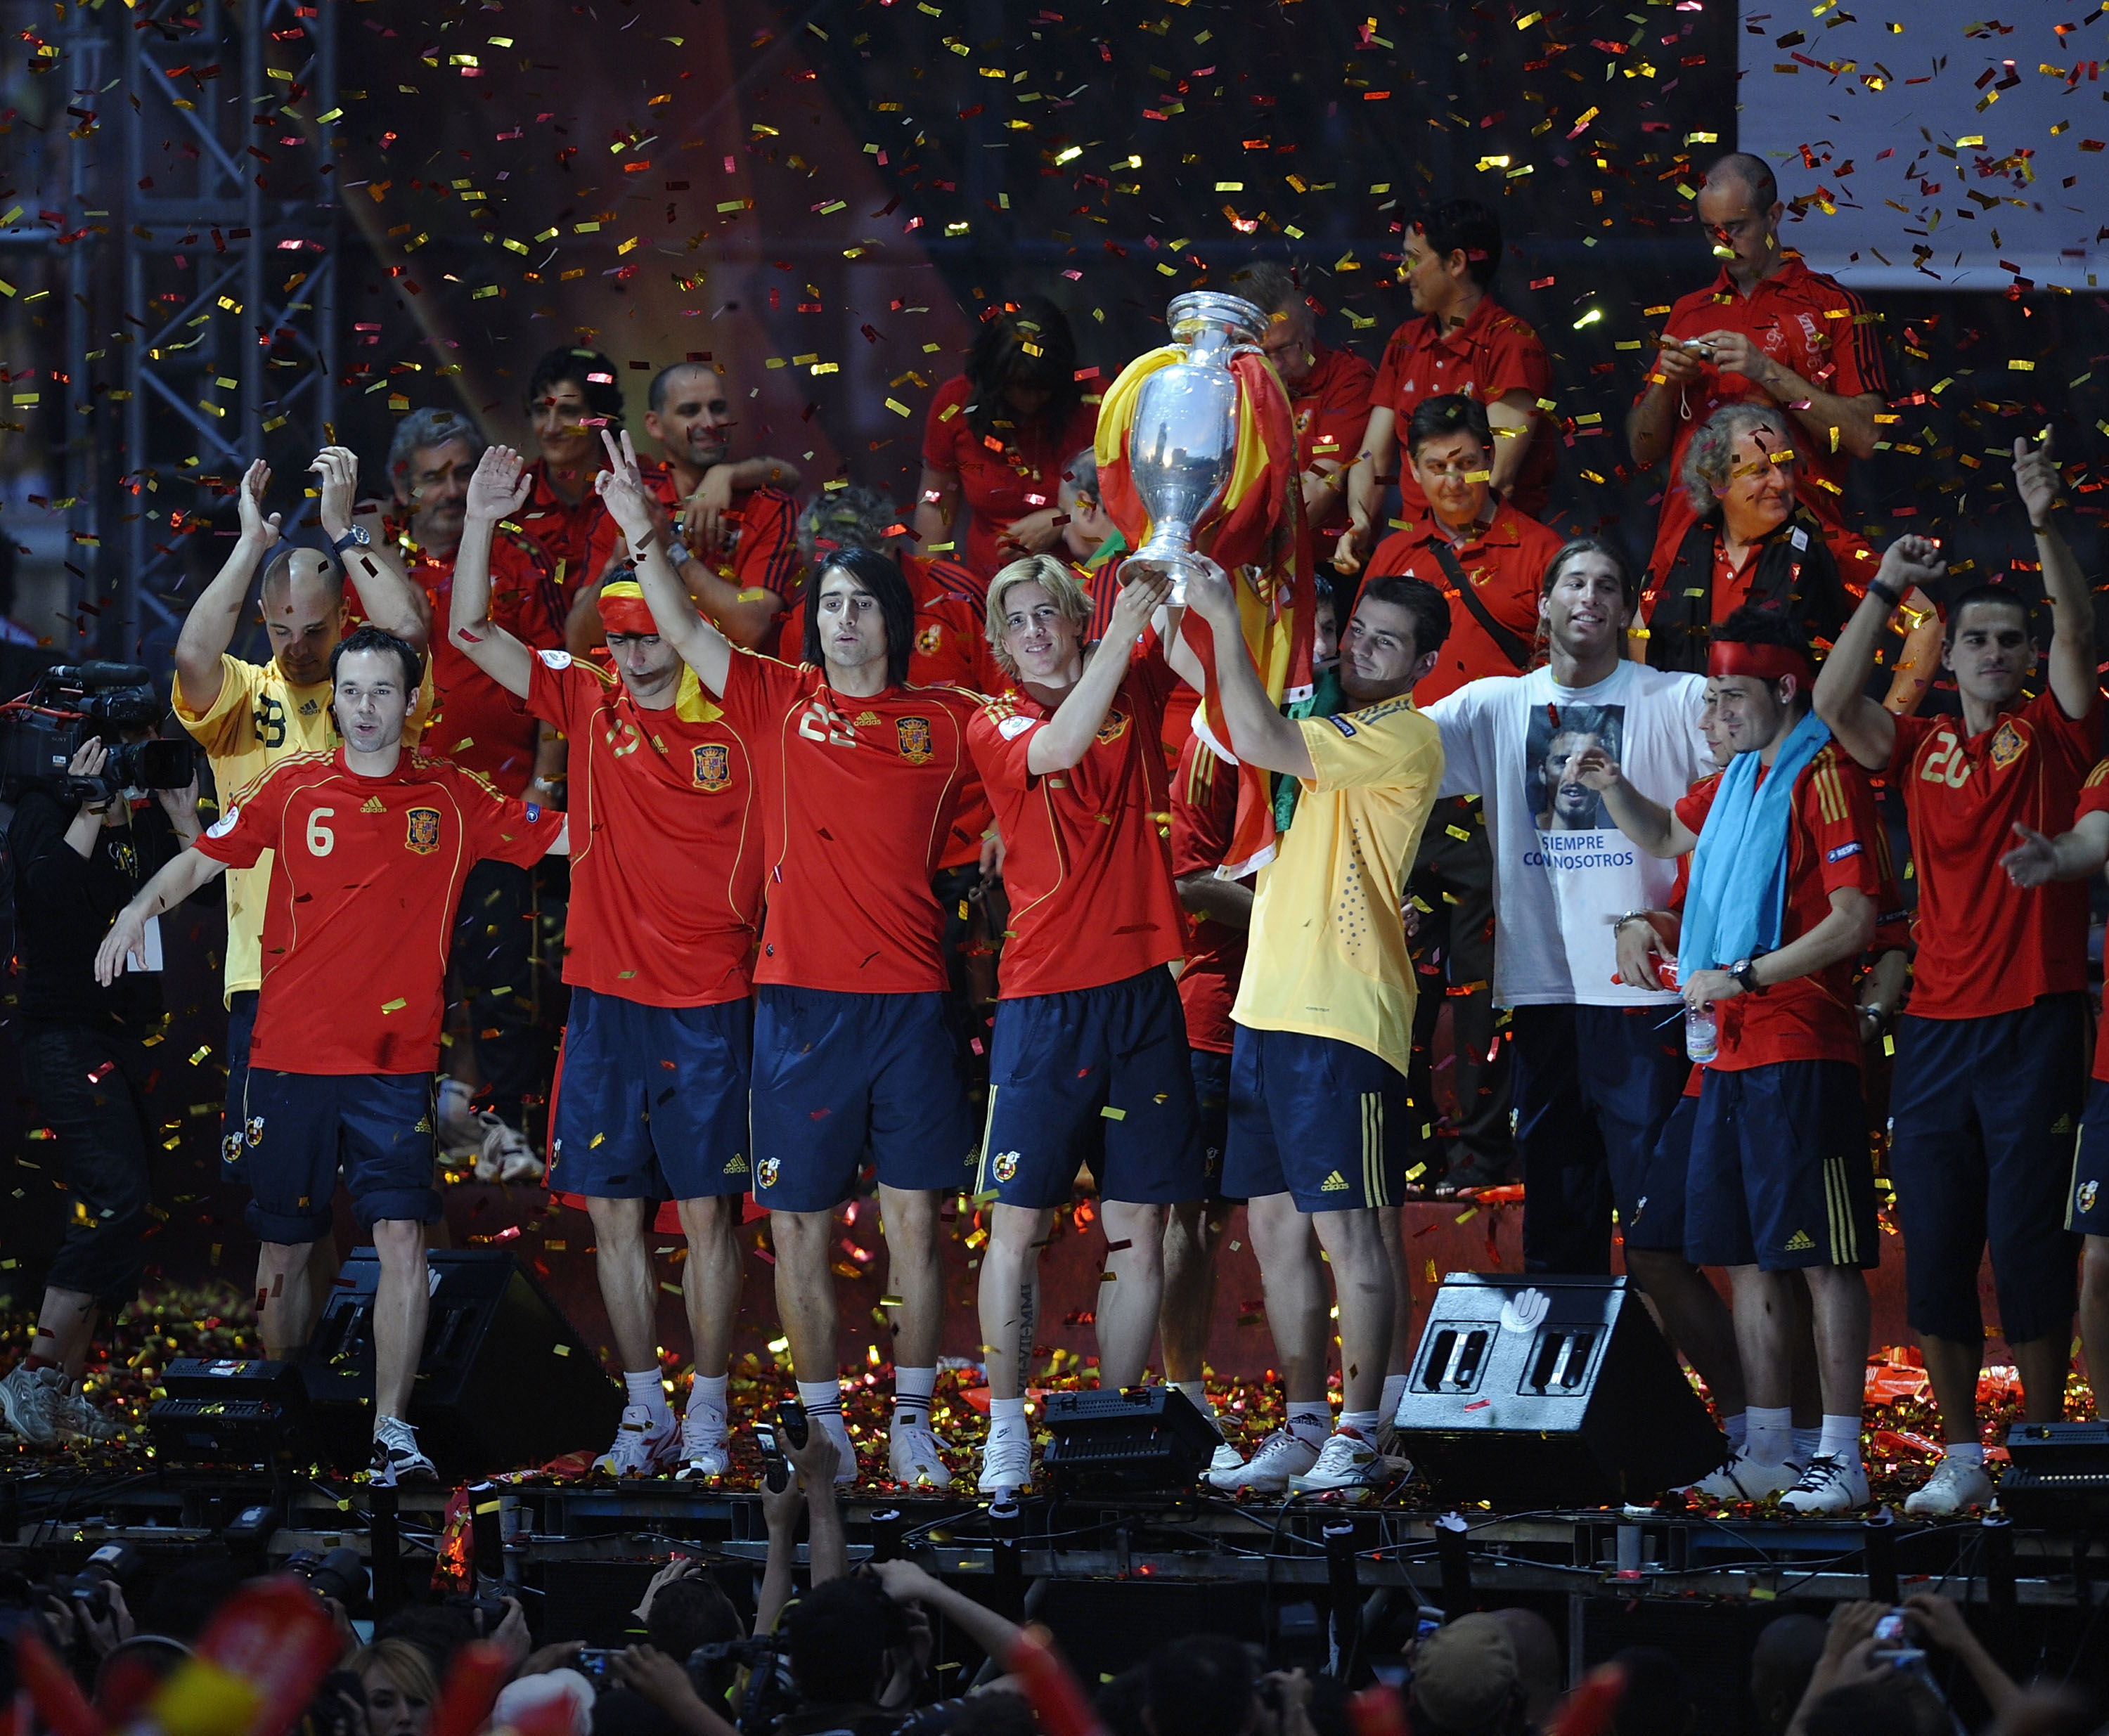 MADRID, SPAIN - JUNE 30:  Fernando Torres and Xavi Hernandez hold the trophy aloft as the Spanish team celebrate with fans at Plaza Colon after winning the UEFA EURO 2008 Final match between Germany and Spain 2008 on June 30, 2008 in Madrid, Spain.  (Phot